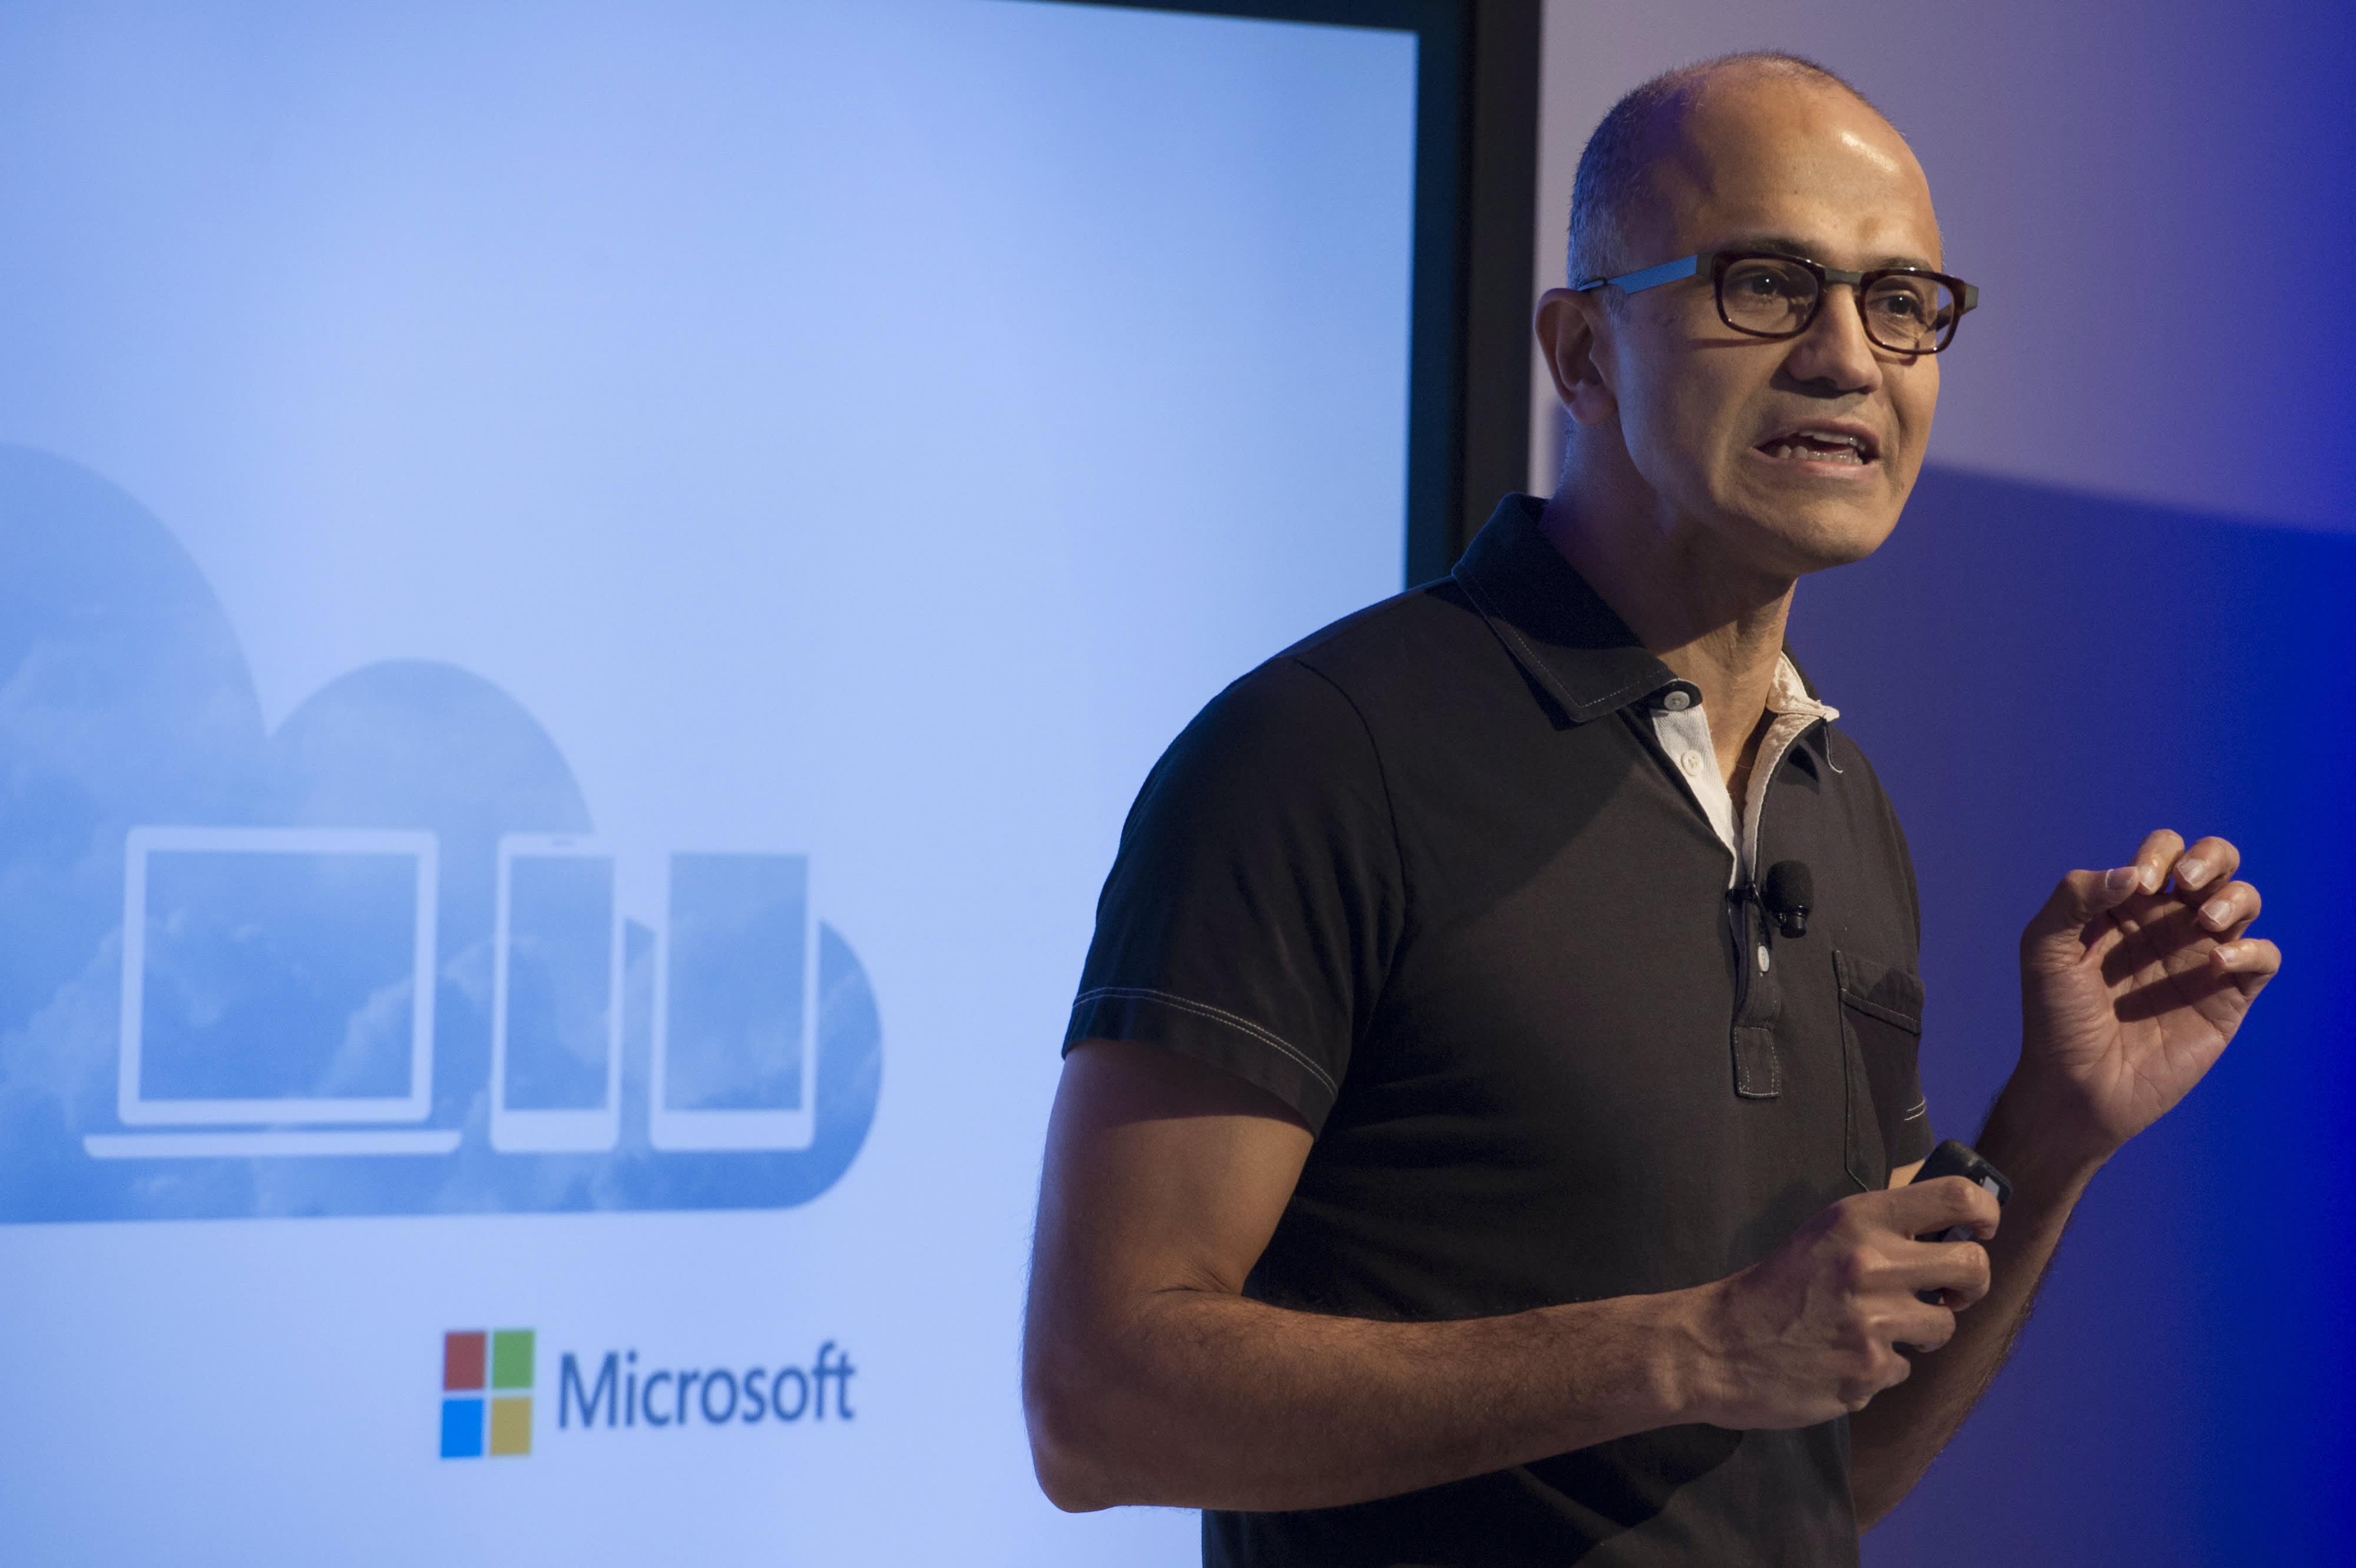 Windows 10 was supposed to be the last version of the operating system — here's why Microsoft might have changed its mind - CNBC